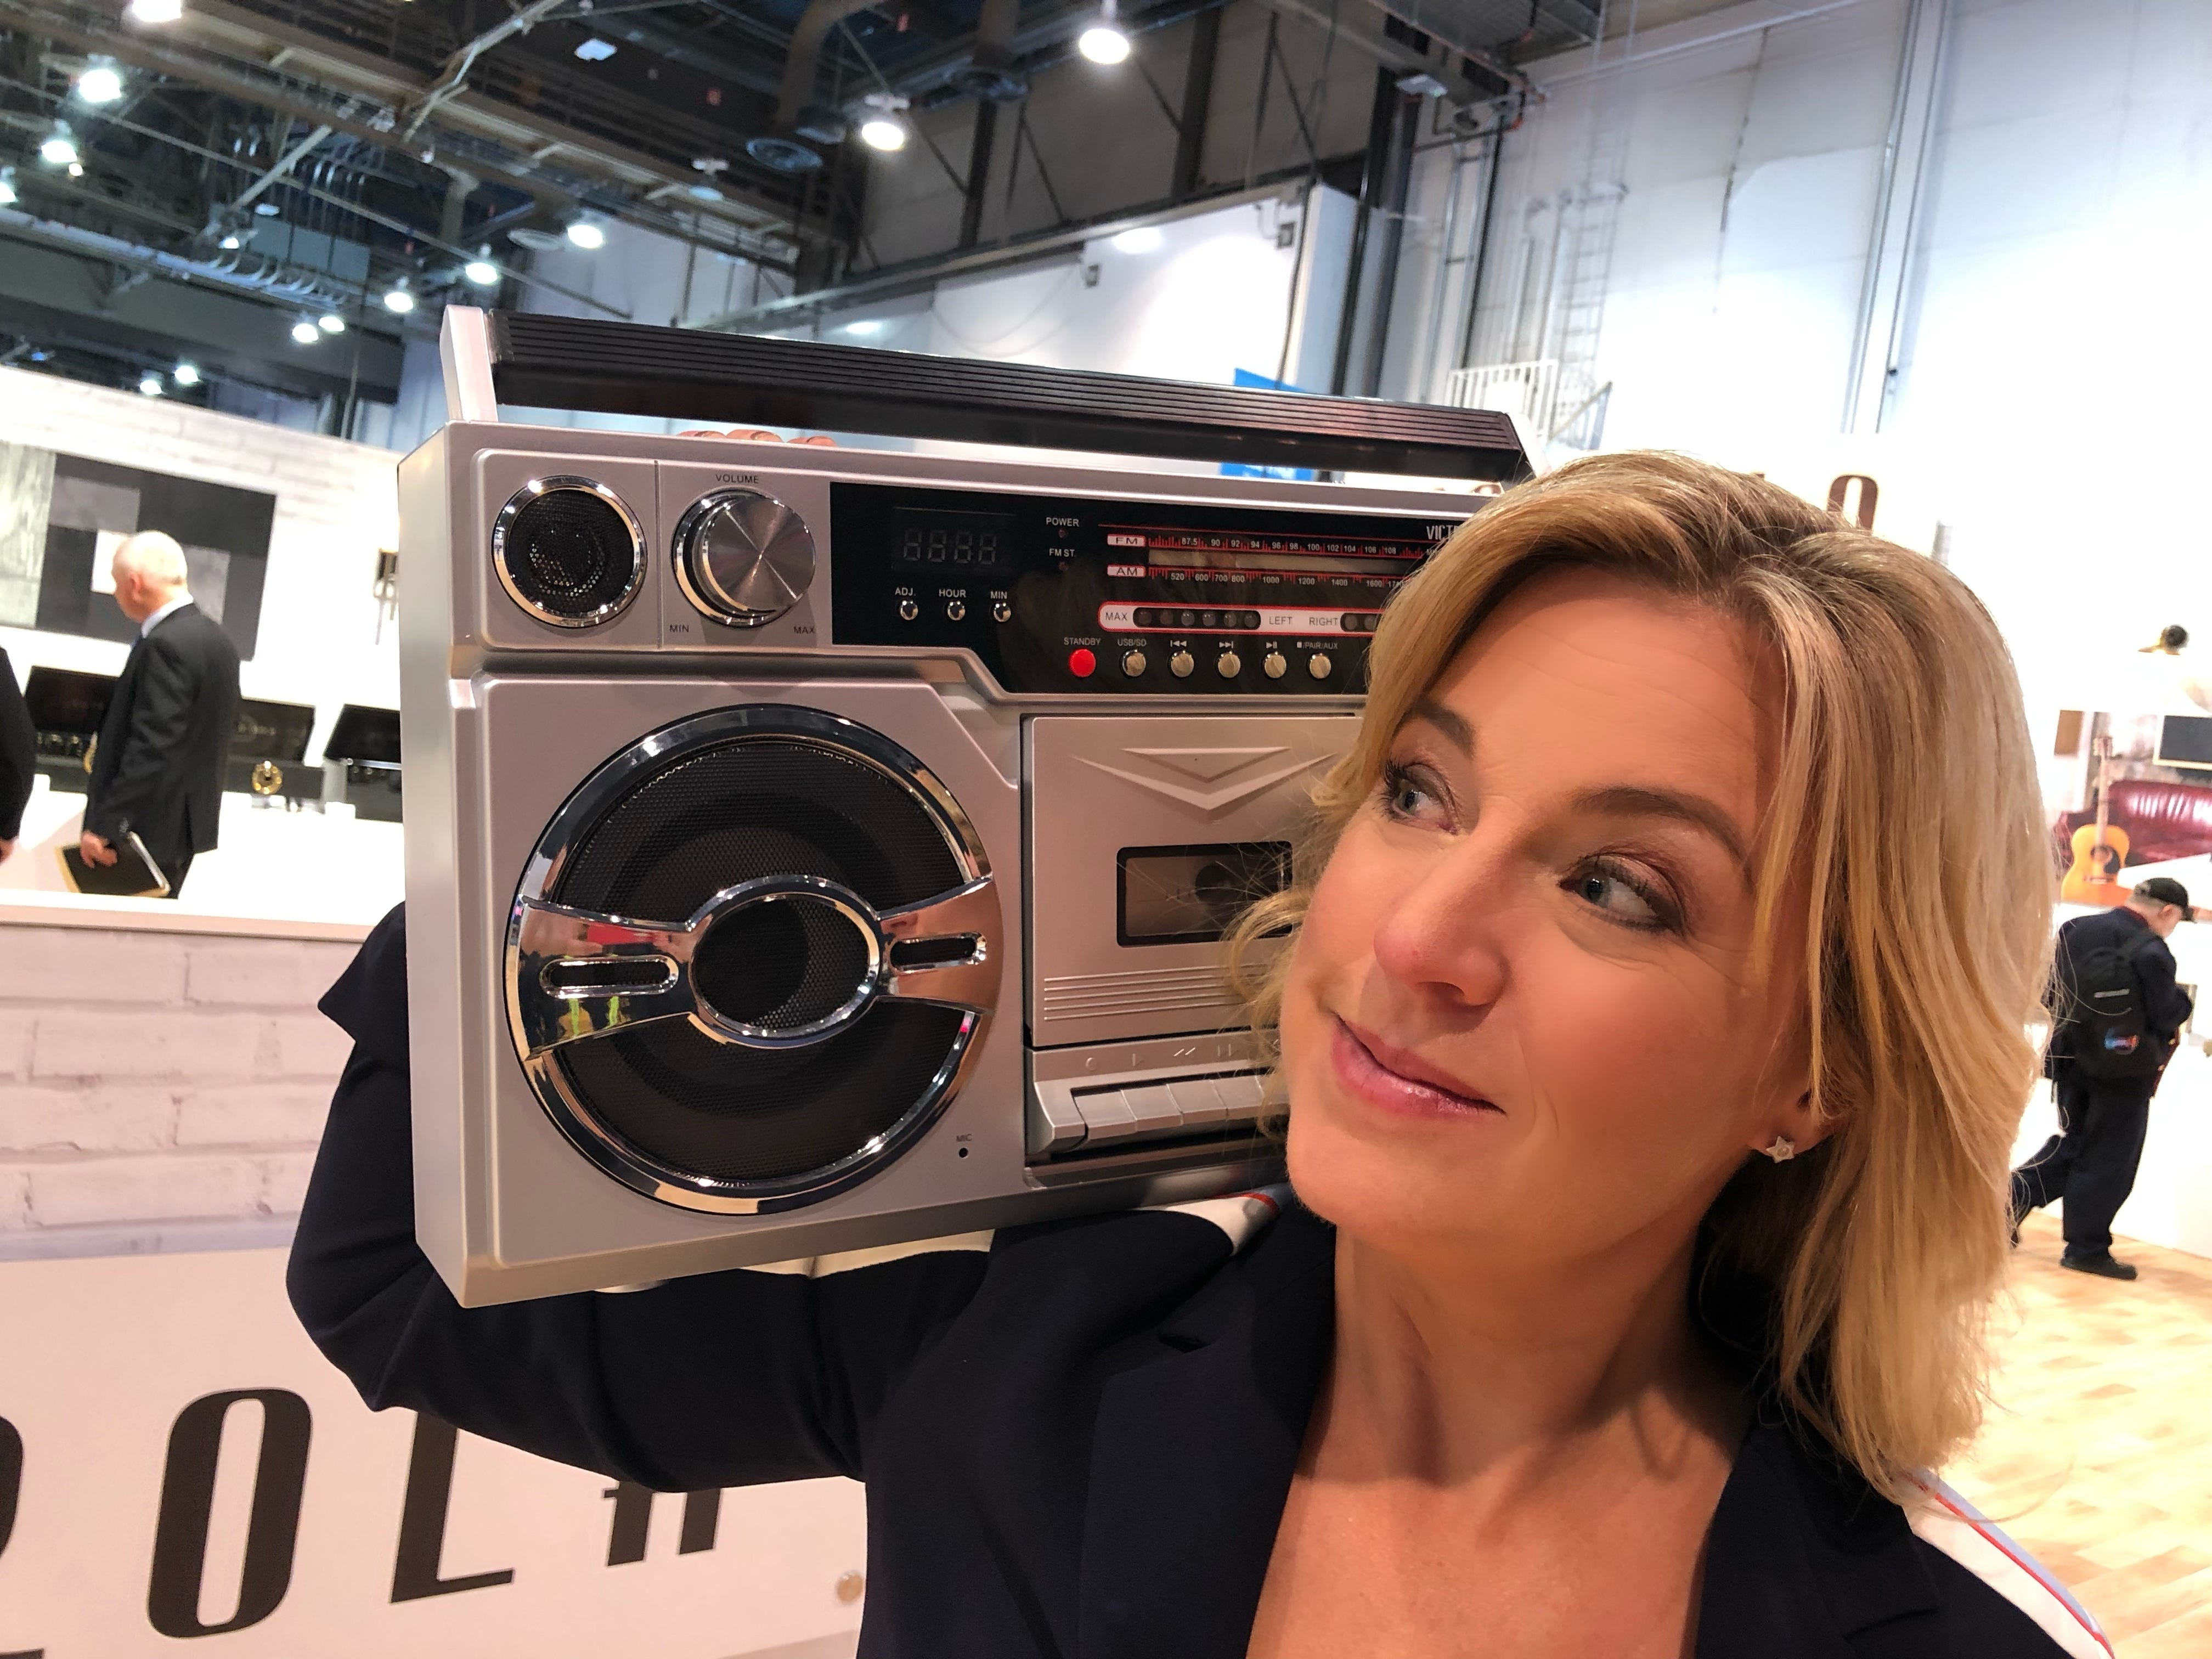 Boom boxes, mix tapes and instant cameras as hot new tech? Yes, it's actually 2019